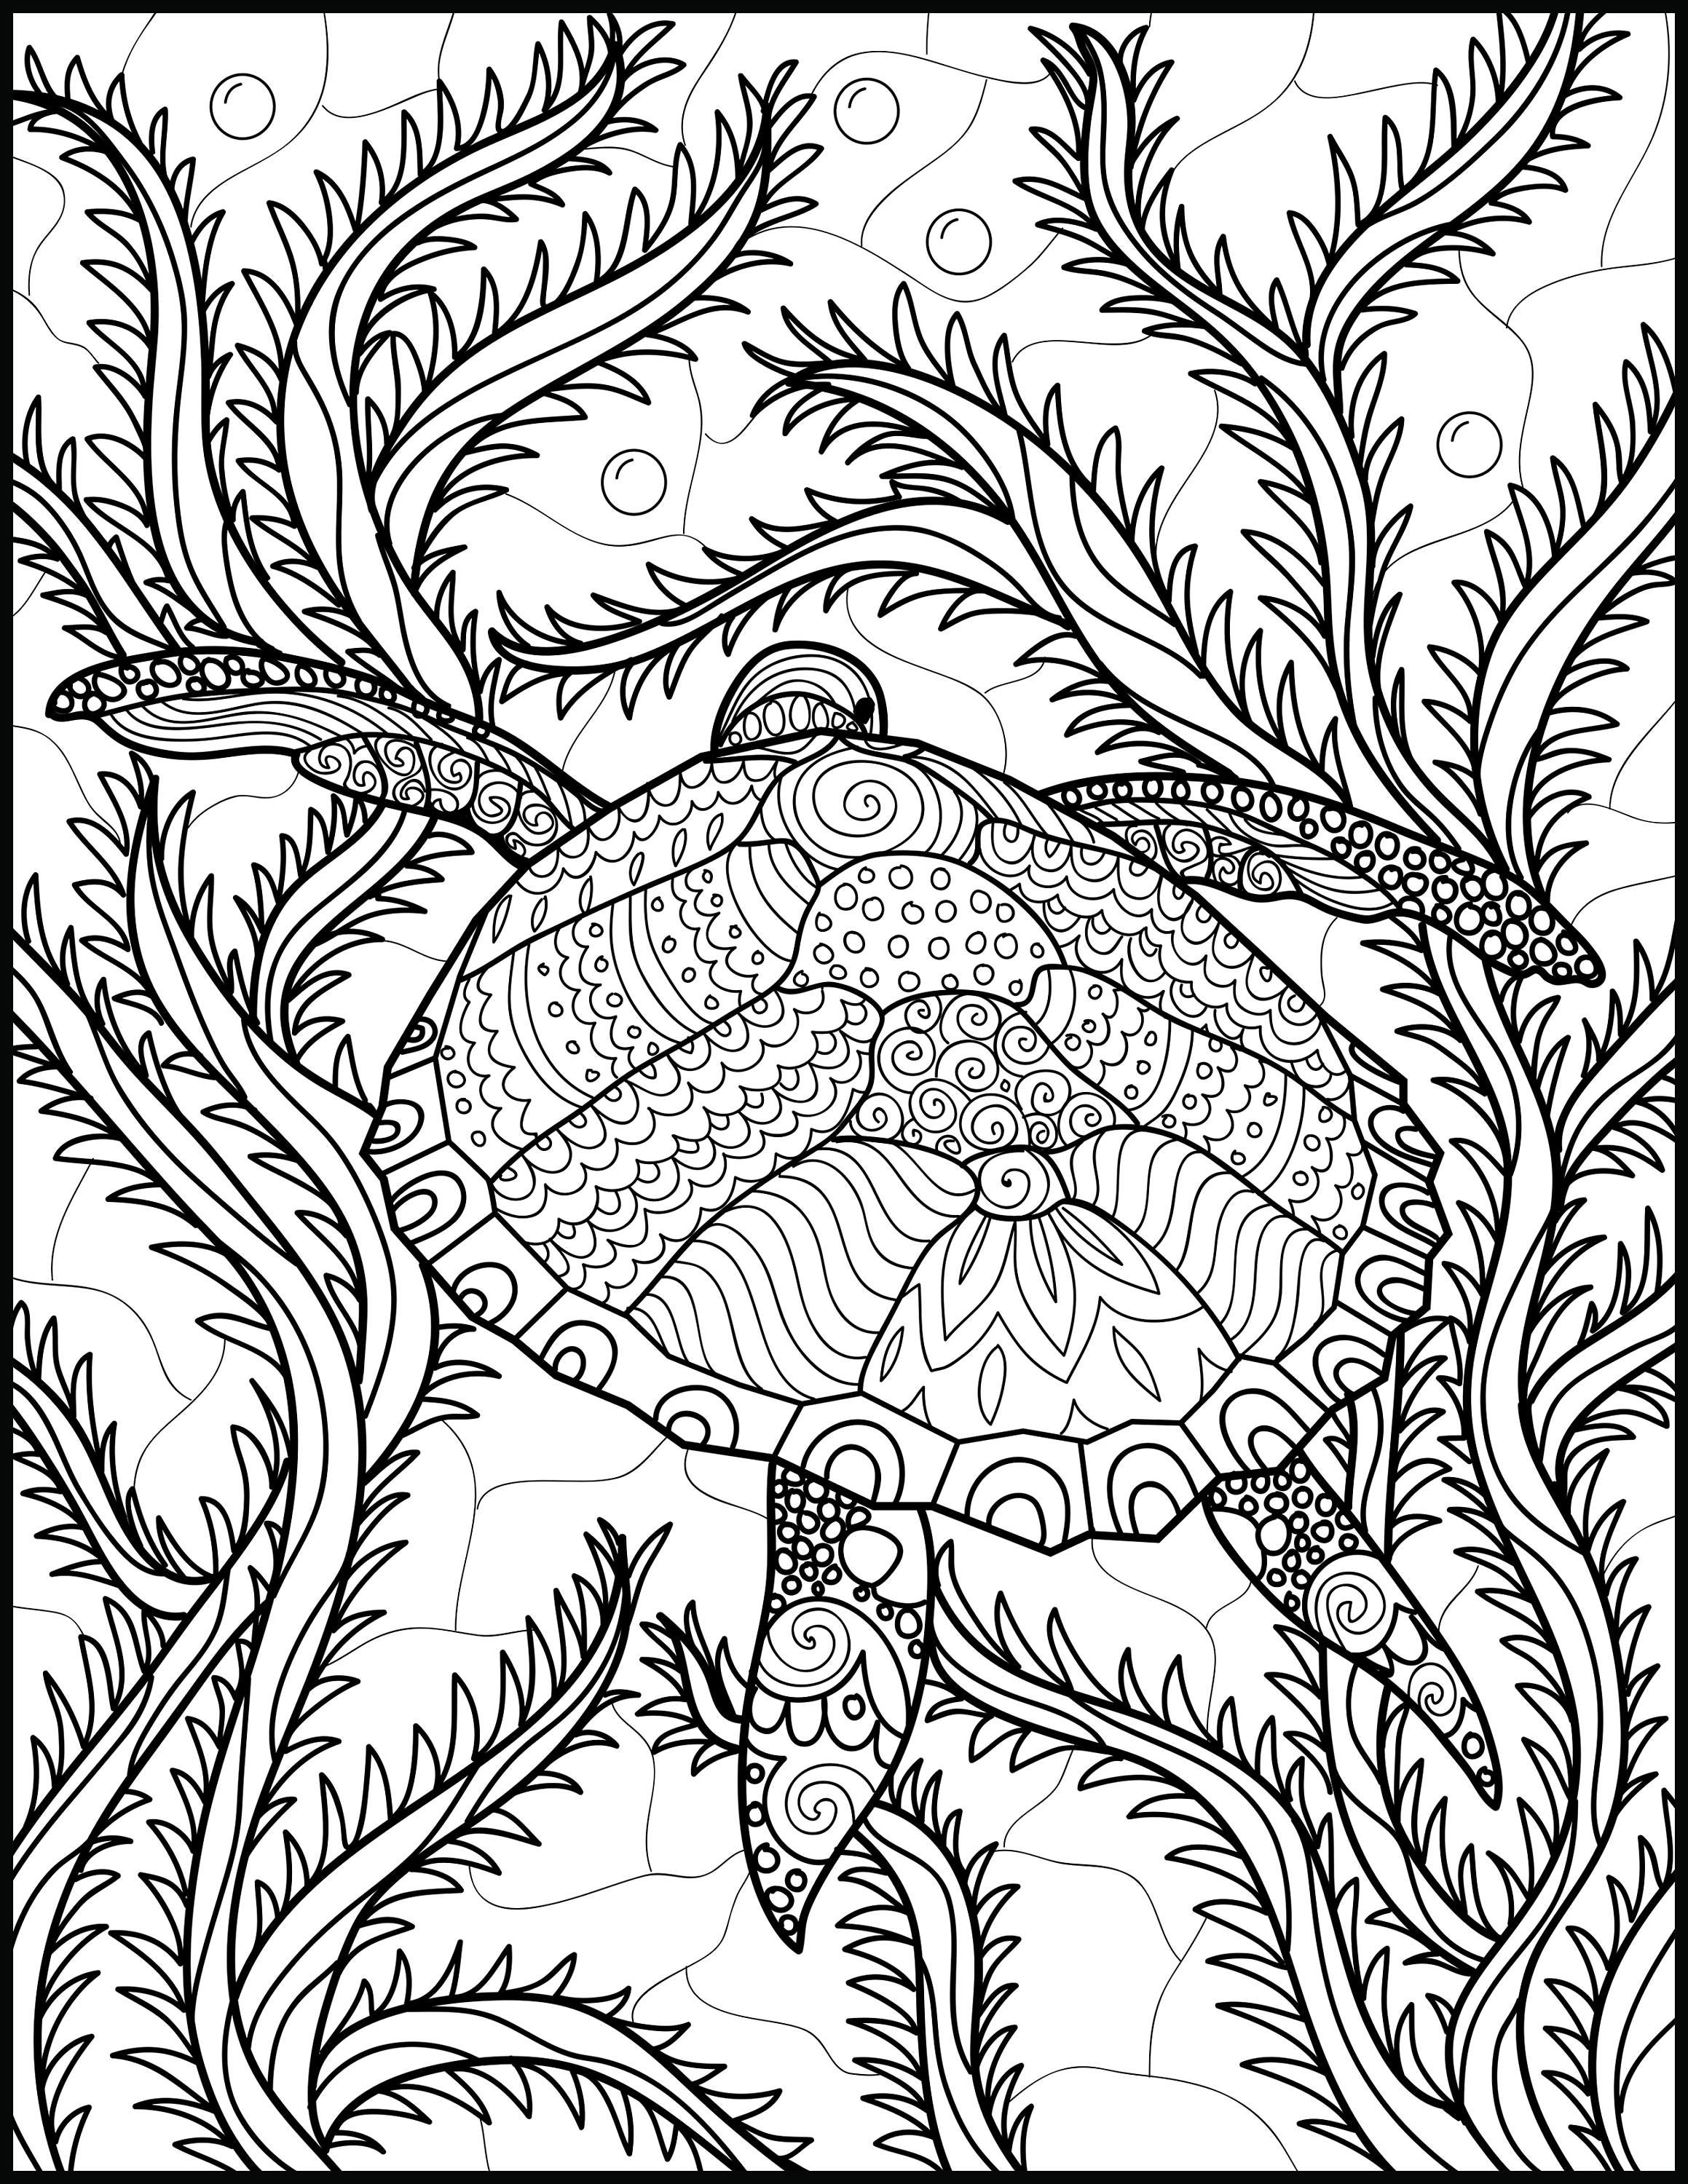 coloring adults pages 2 adult coloring pages animal coloring page printable etsy pages coloring adults